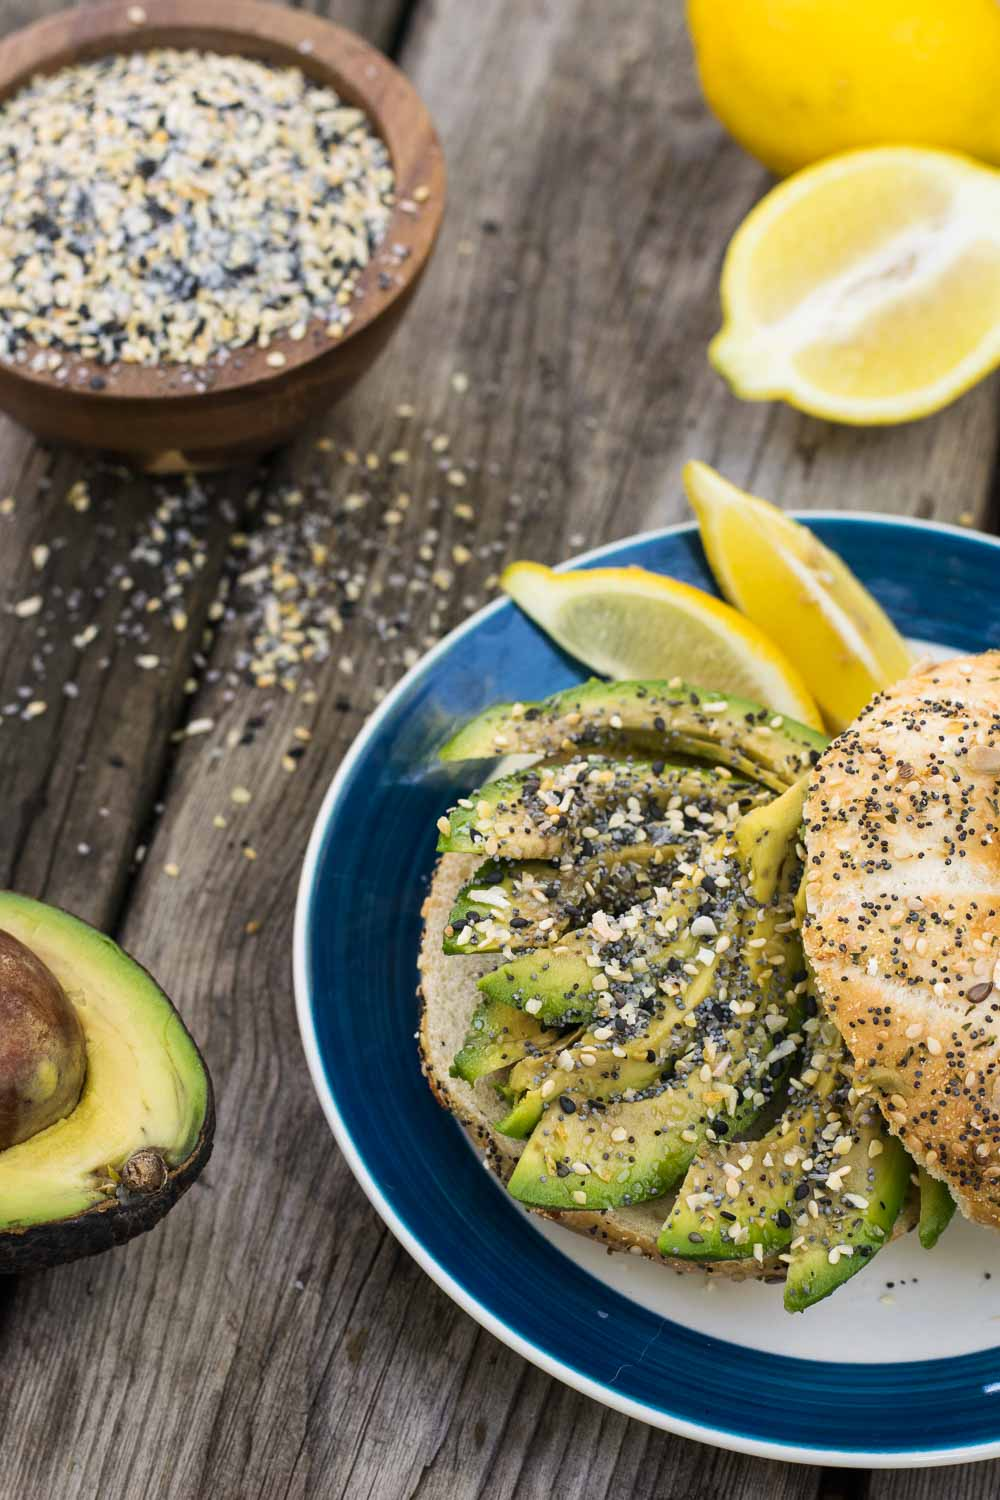 Everything seasoning for avocado toast, baked nuggets, salads, and more - this salty blend of goodness goes on everything, pun totally intended.